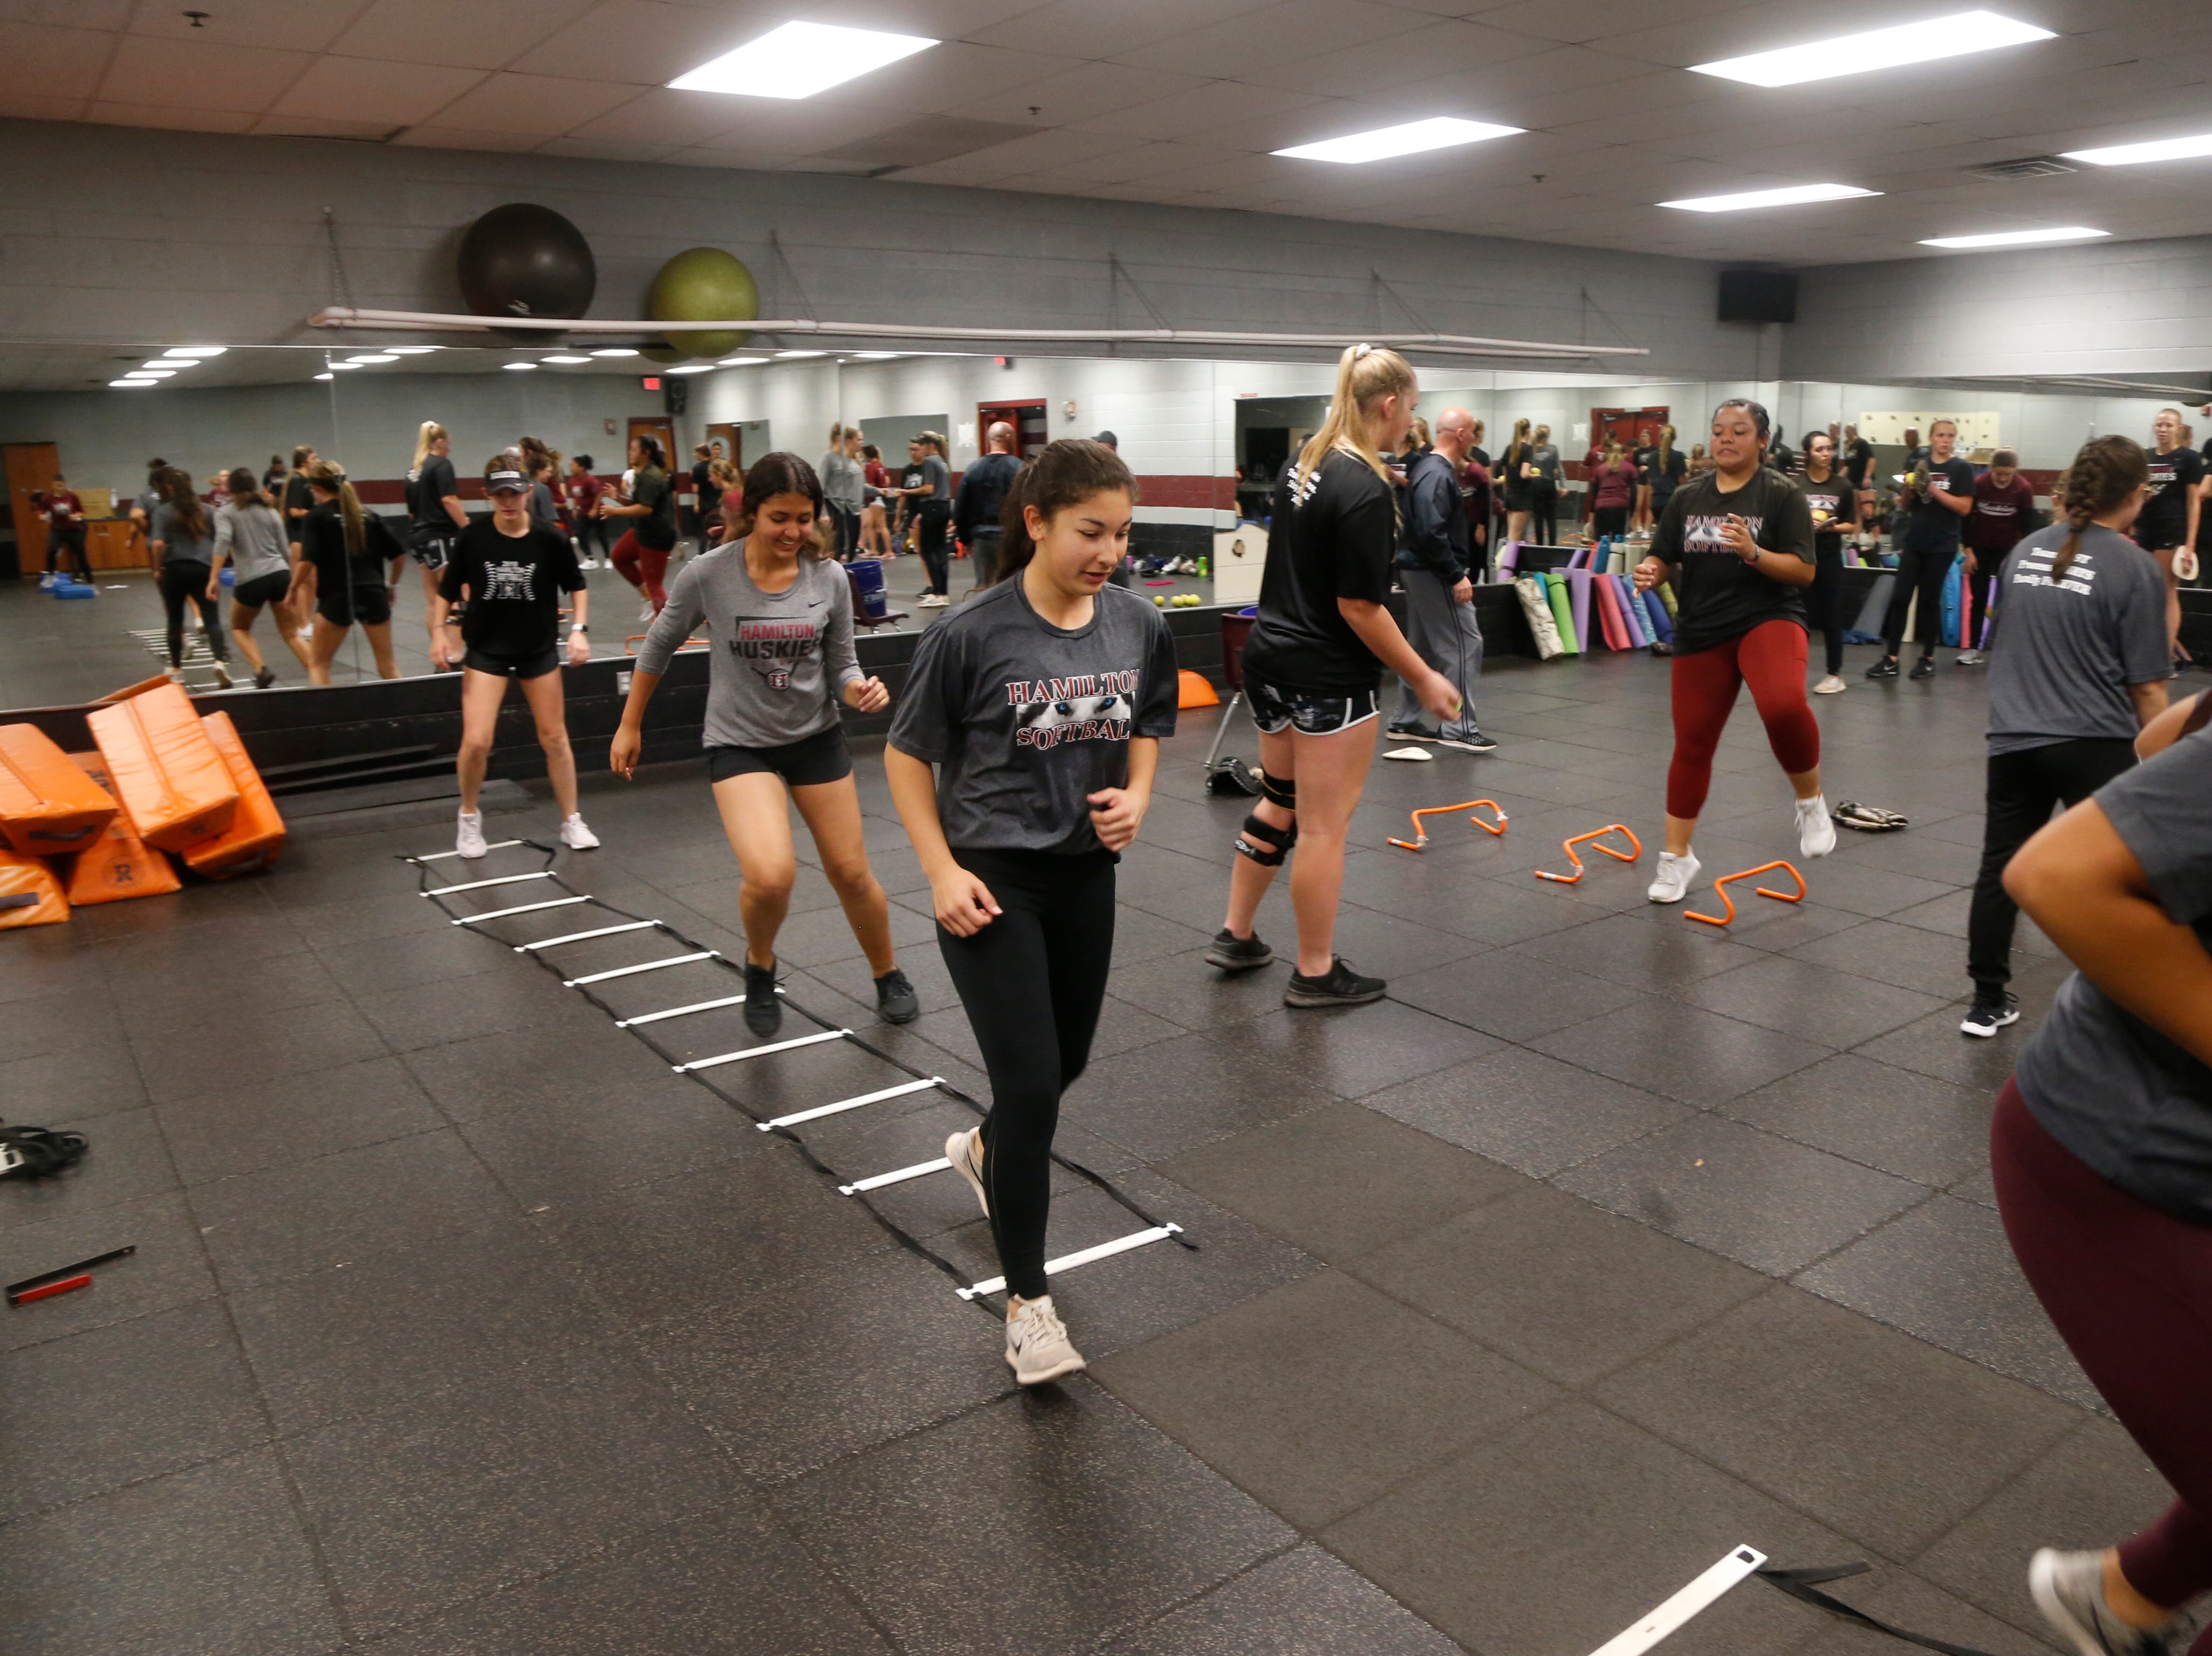 Hamilton softball players practice inside due to rain at Hamilton High School in Chandler, Ariz. on February 21, 2019.